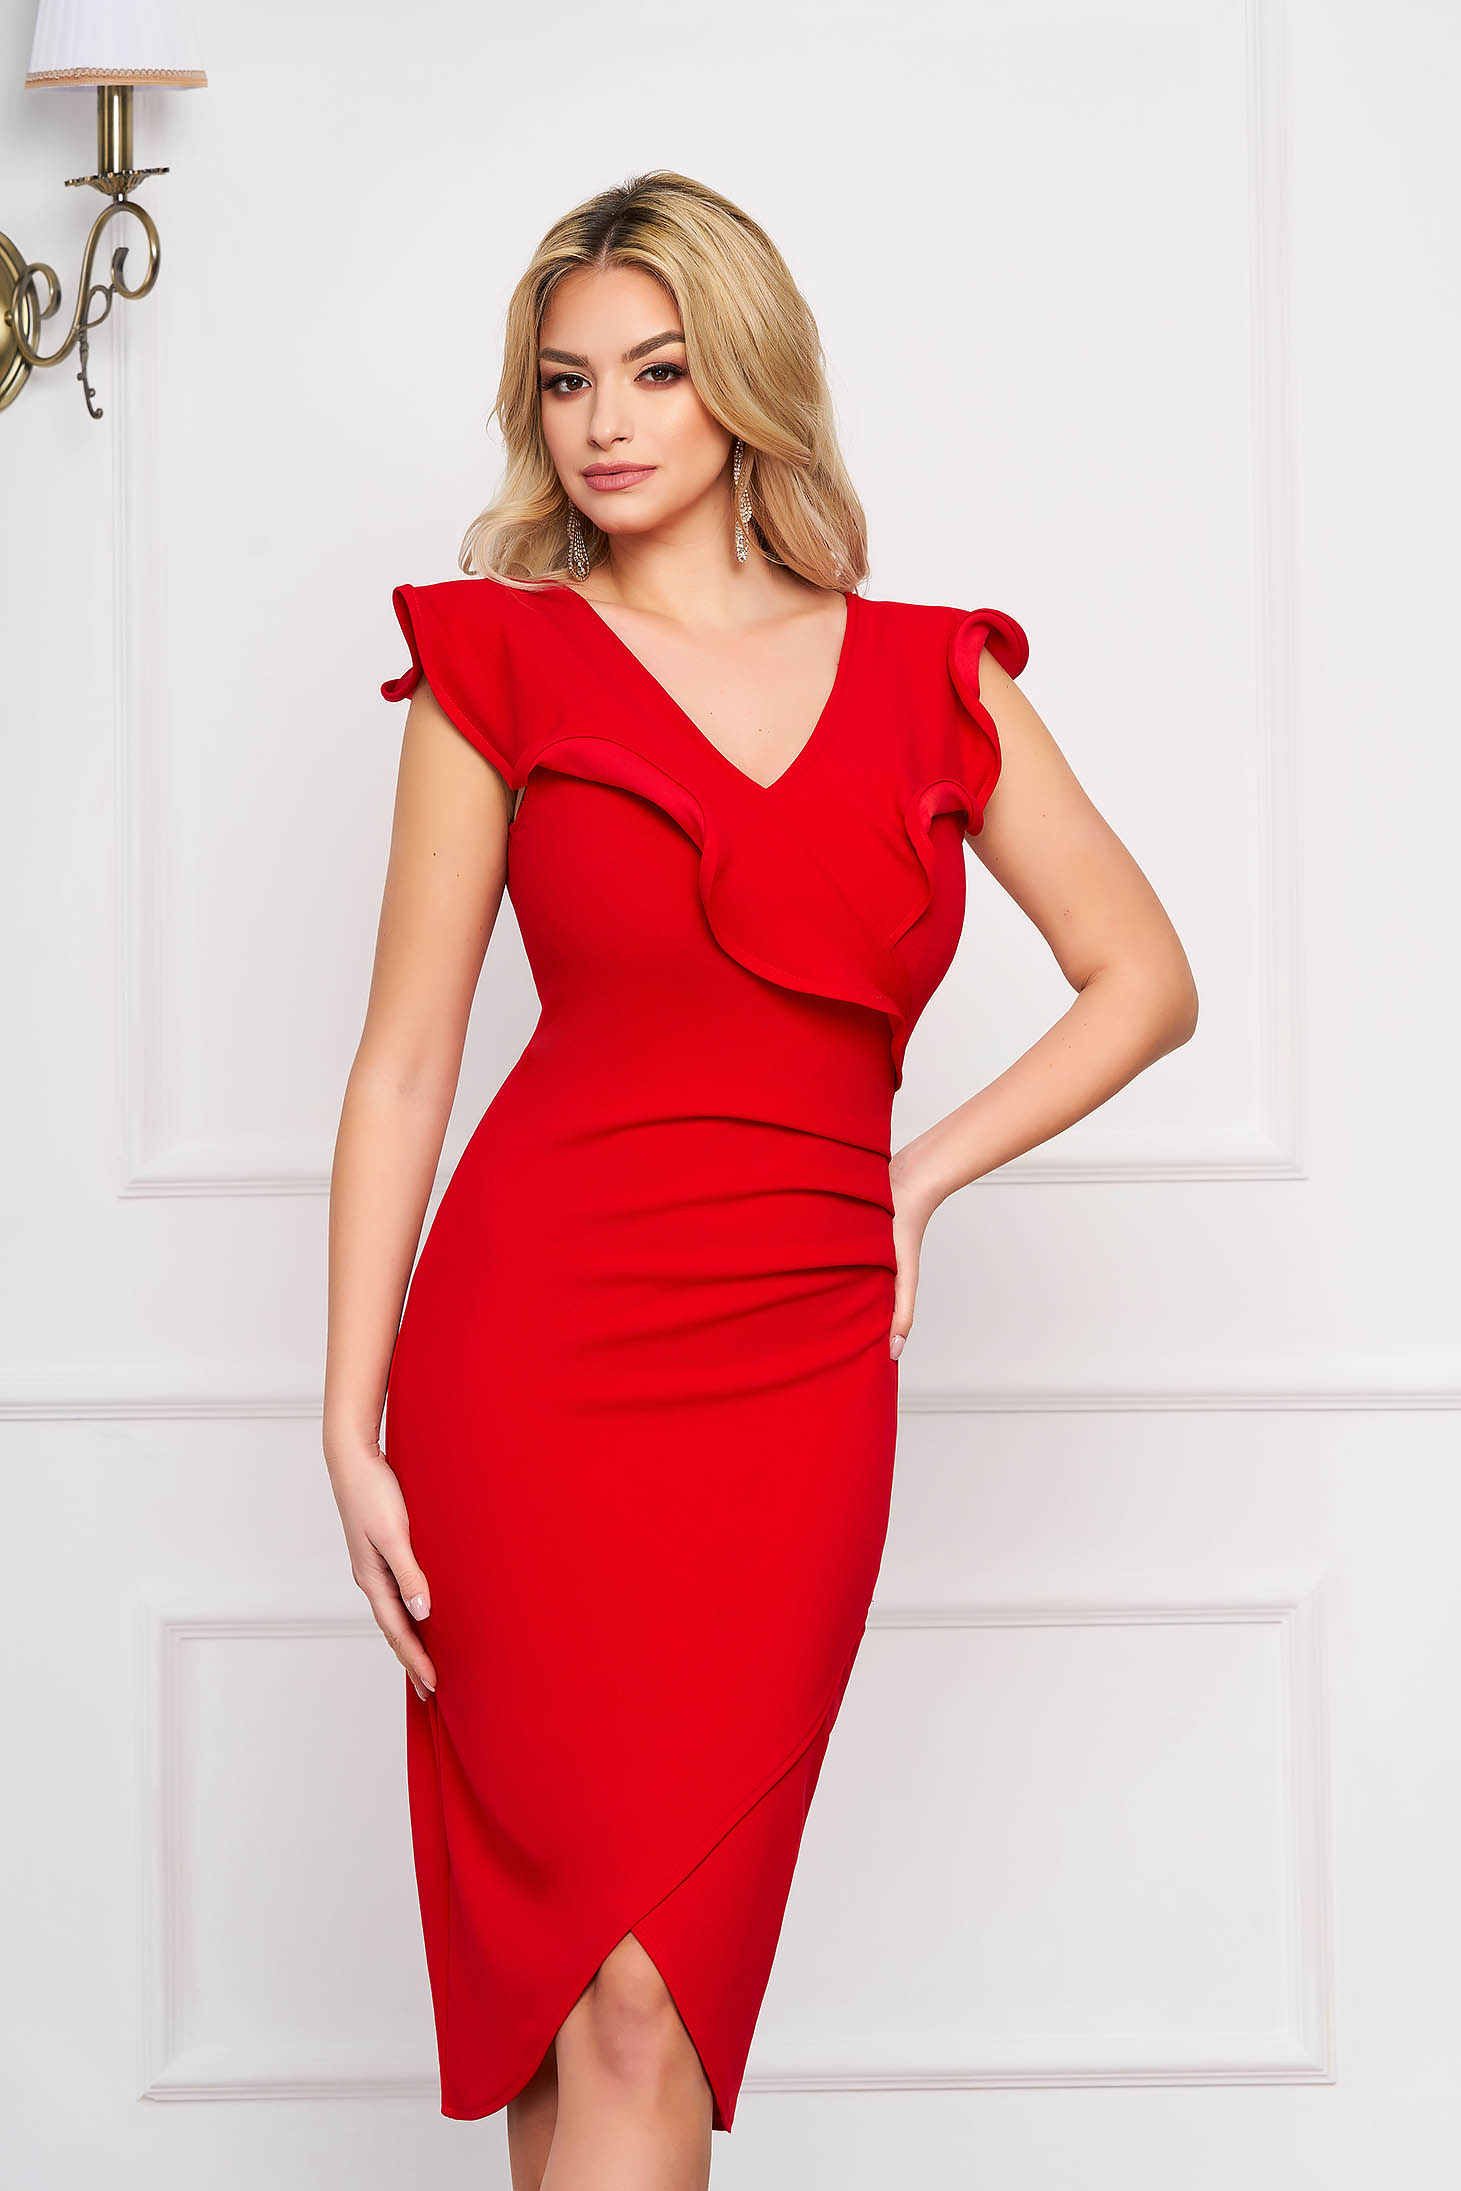 StarShinerS red dress elegant with tented cut with a cleavage sleeveless frilly trim around cleavage line